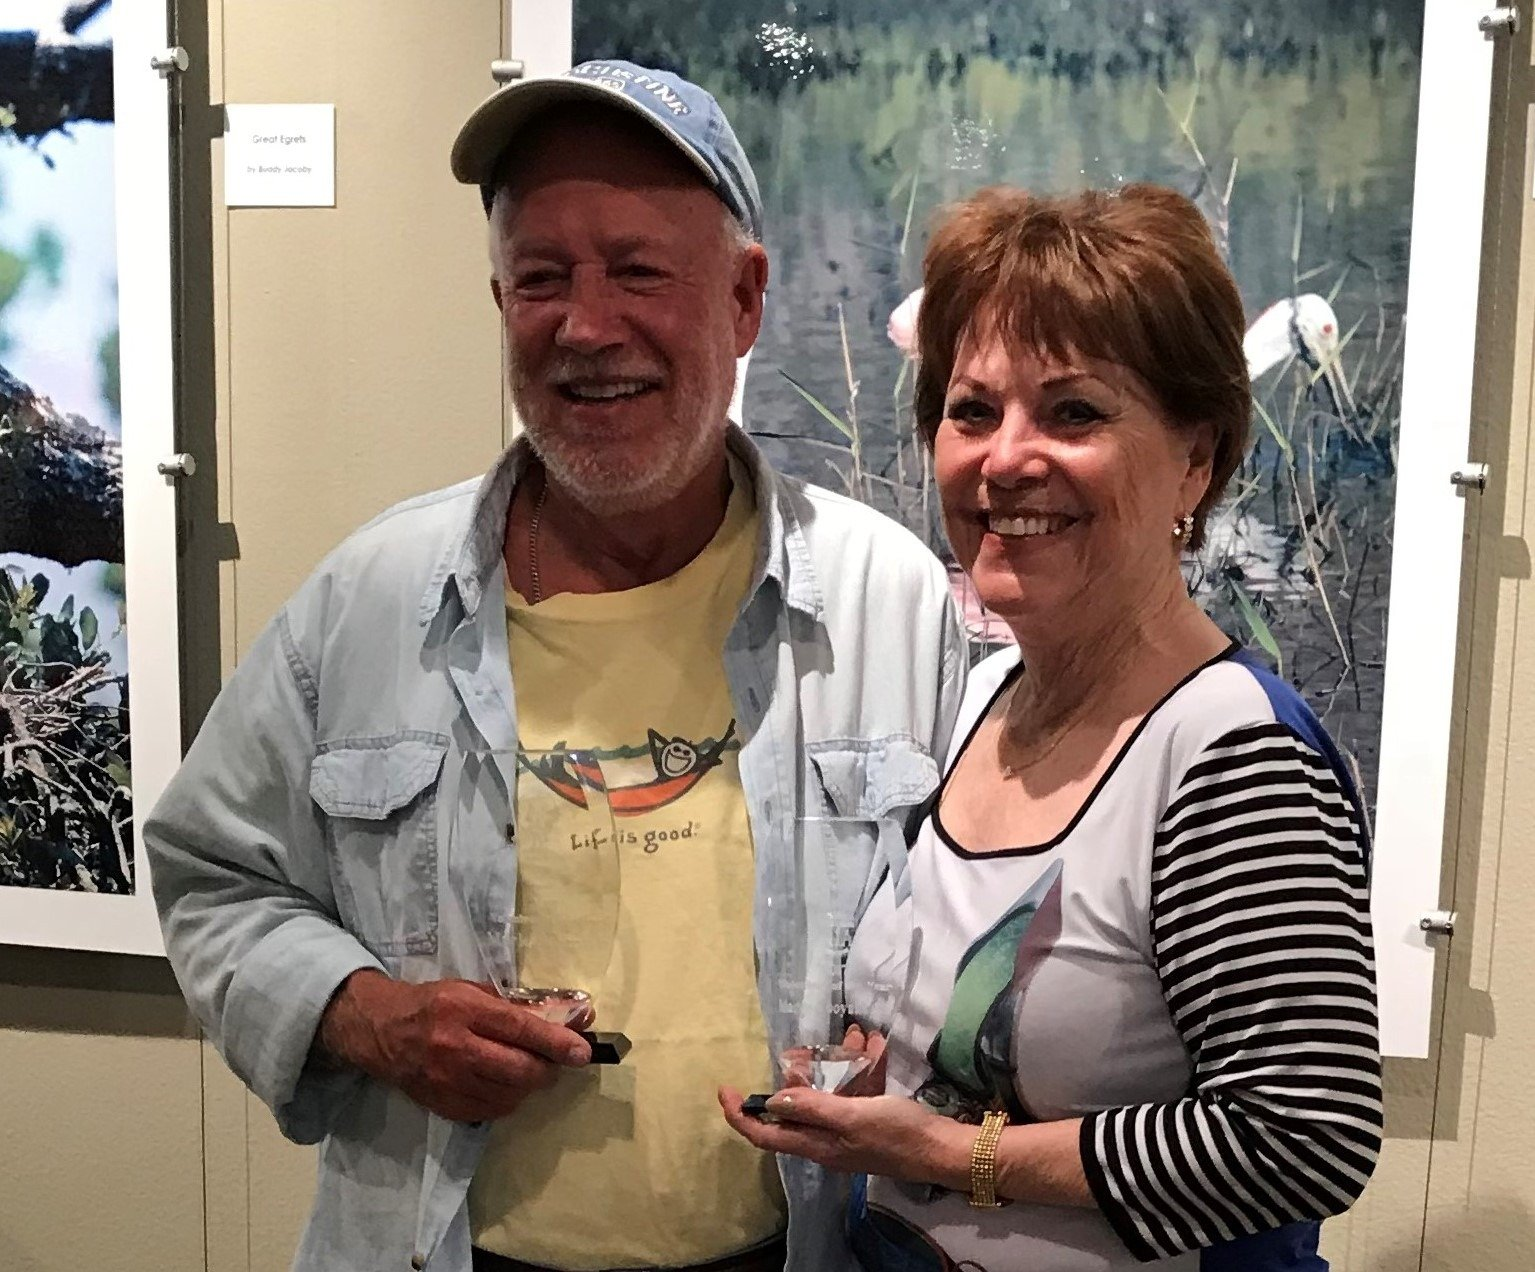 A1A's 2017 Volunteer of the Year award ceremony